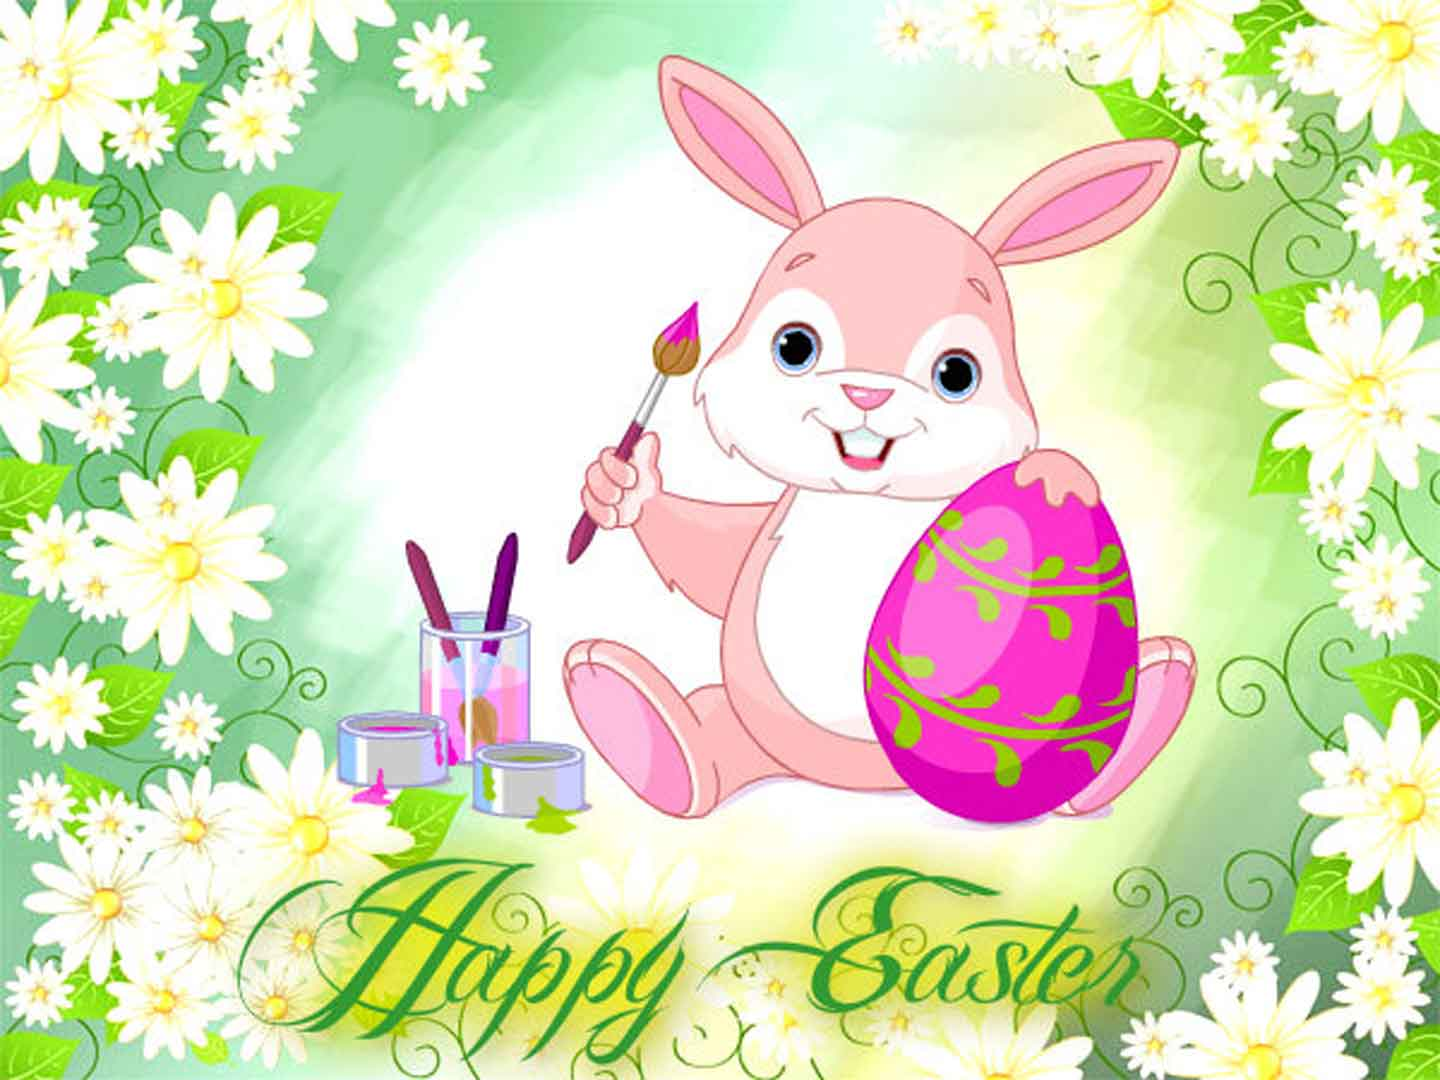 Happy easter wallpapers pictures wallpaper cave - Easter bunny wallpaper ...